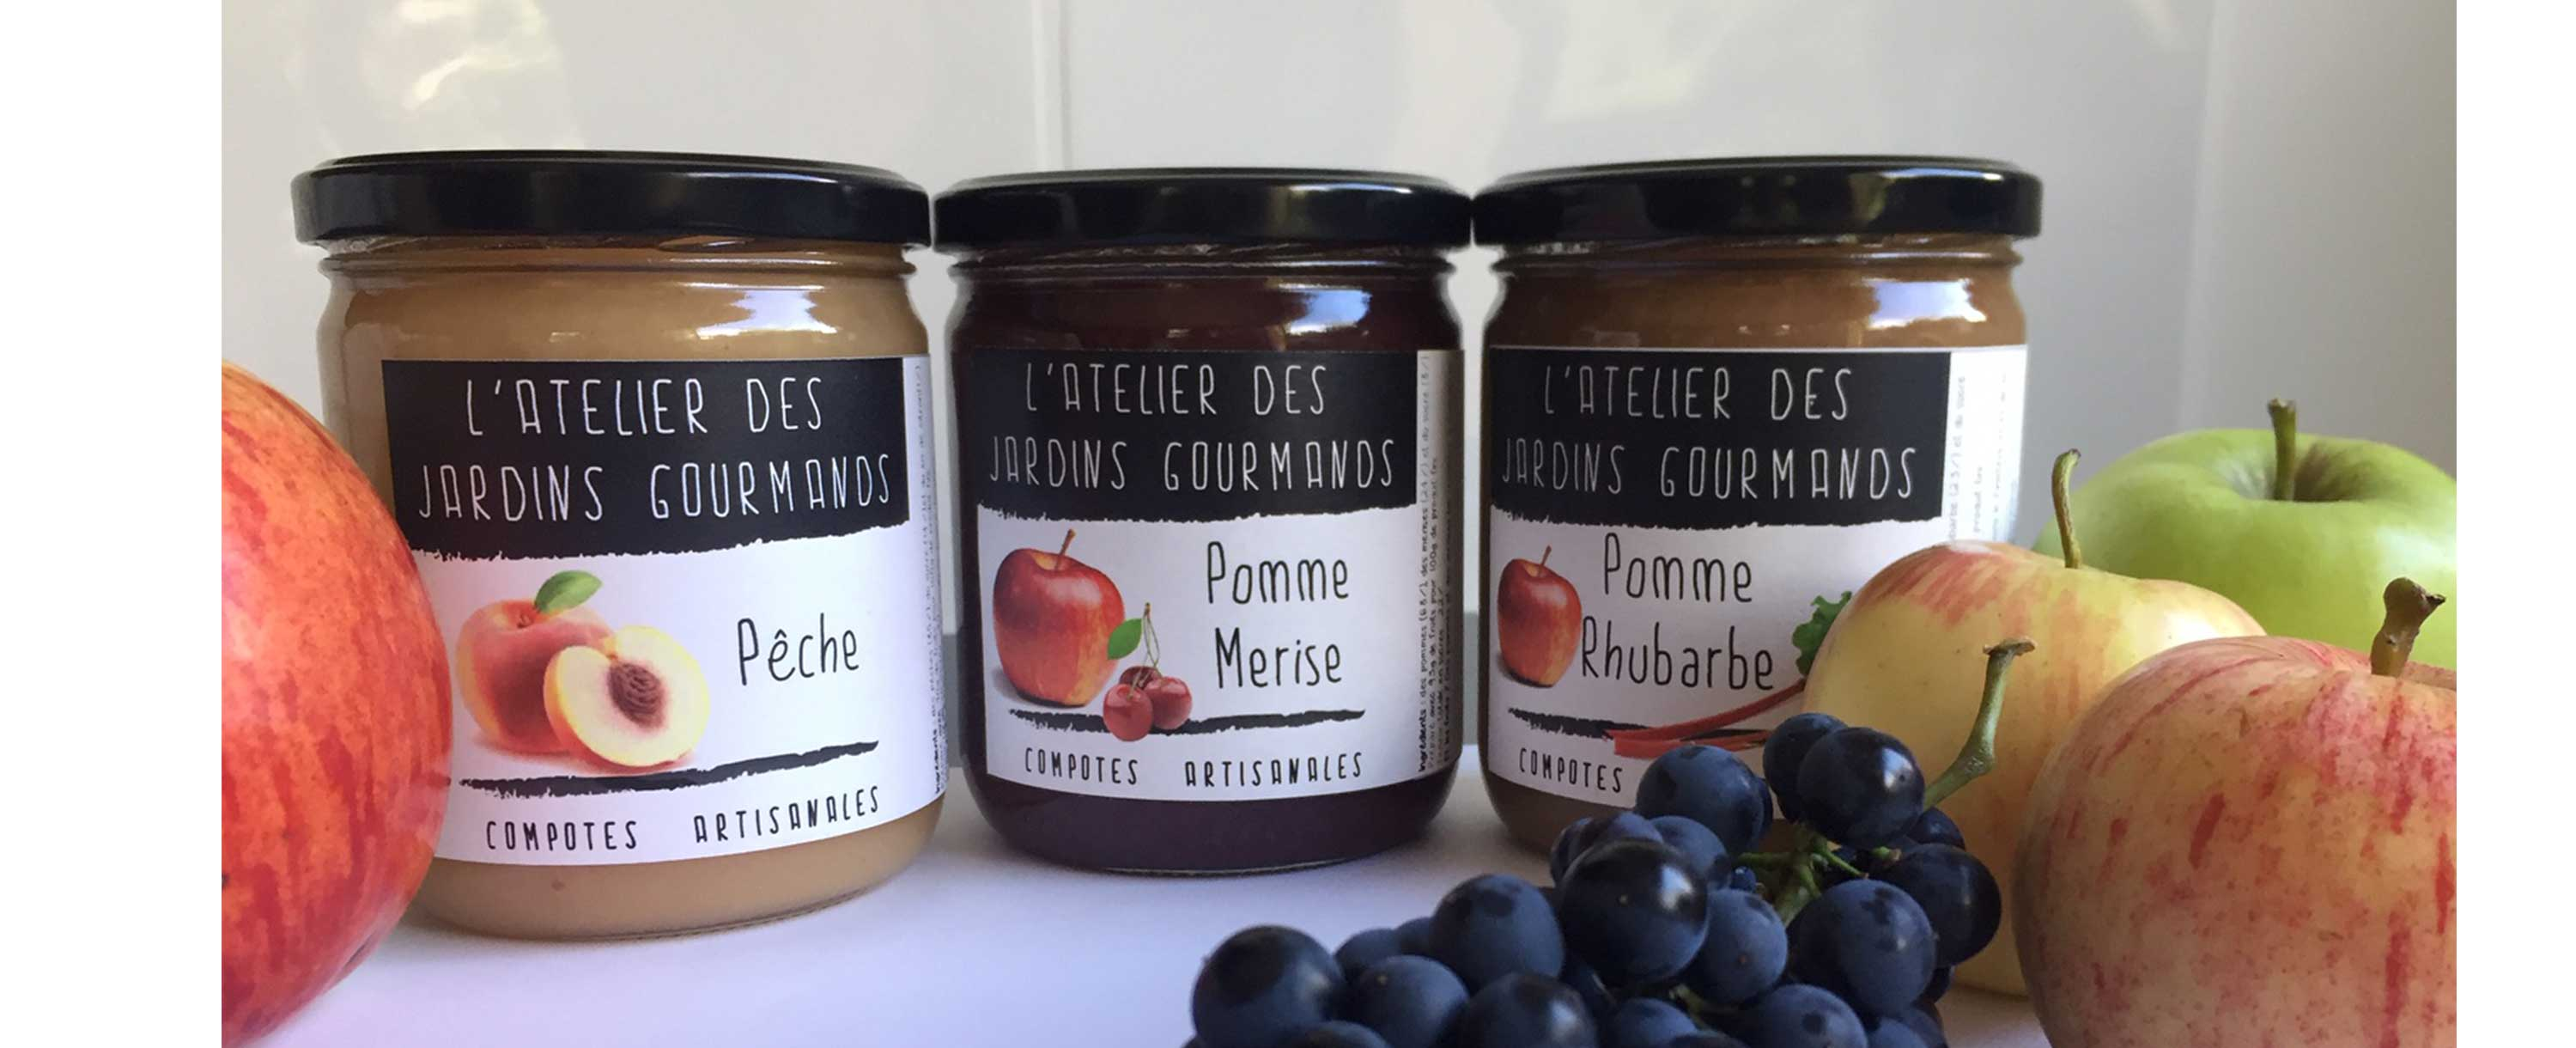 ensemble-compotes-compote-ass-atelier-des-jardins-gourmands